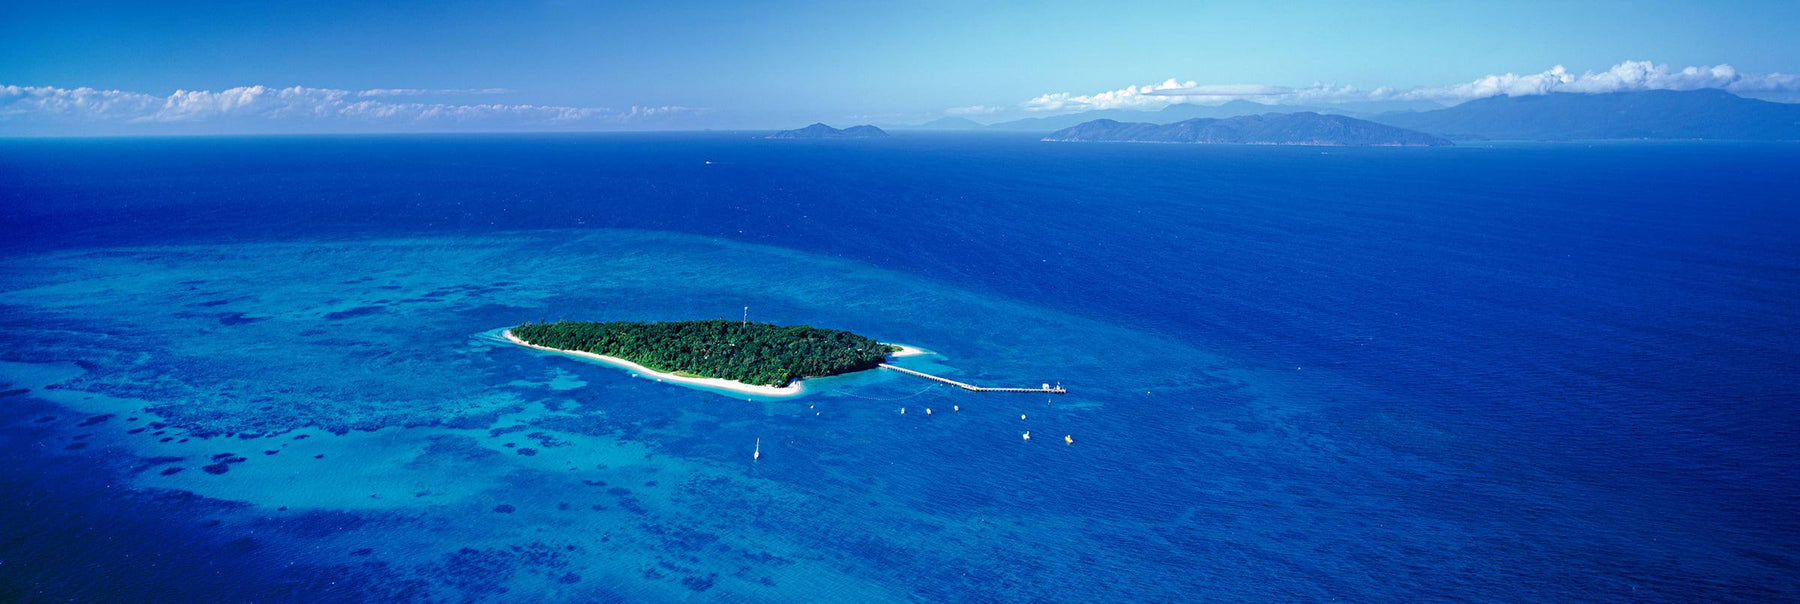 Aerial view of Green Island full of trees with a pier and boats surrounded by the Great Barrier Reef Australia